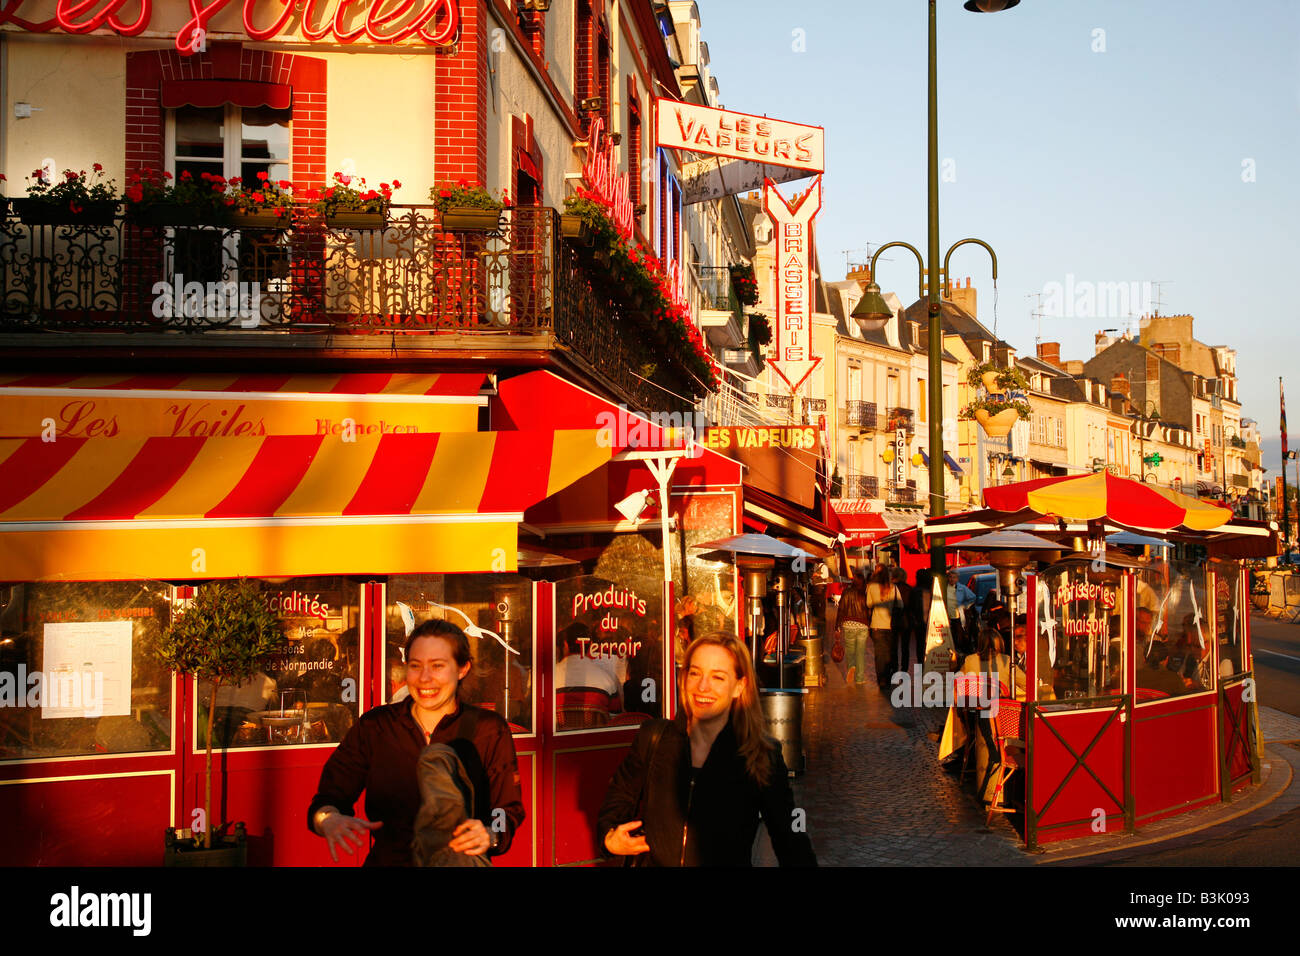 July 2008 - Street scene in Trouville Normandy France - Stock Image